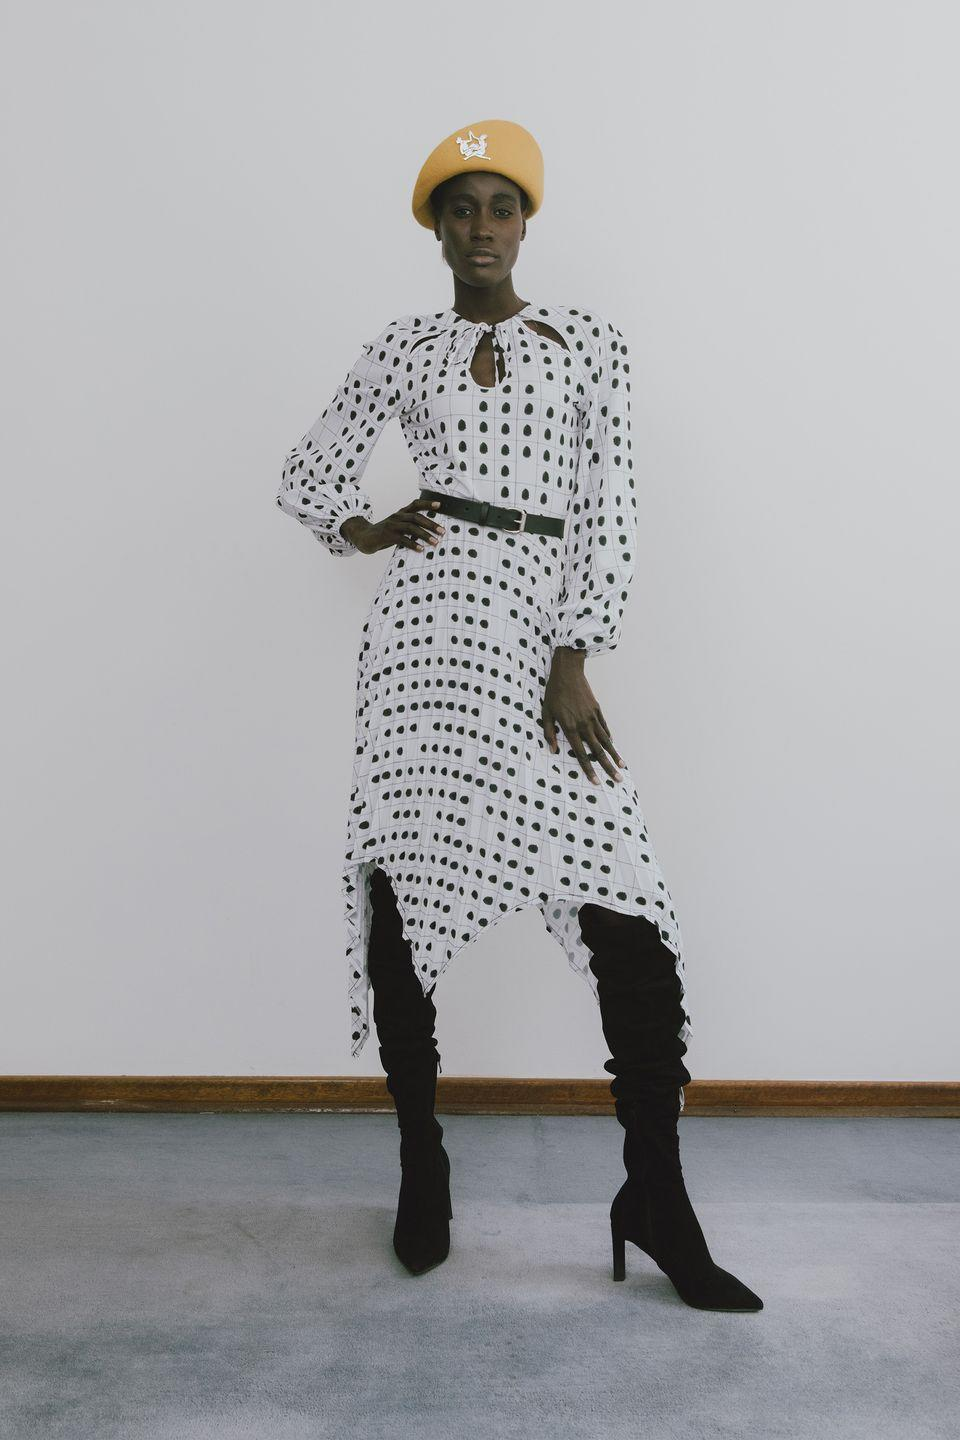 "<p>If Thebe Magugu's spring 2021 Counter Intelligence lineup, which oscillated between sharp, tailored pieces and fluid dresses, seemed to have multiple style personalities, well, that's because it did. ""Our immediate picture of spies is largely informed by their portrayal in popular culture—slim, ostentatiously demure, fashionable and aloof,"" said the Johannesburg-based designer and 2019 LVMH Prize winner. ""Truth is, spies are all around us, they are our beloved teachers, friends, and family members."" Magugu's collection is an ongoing exploration of the <a href=""https://www.harpersbazaar.com/fashion/designers/a34058383/thebe-magugu-website-launch/"" rel=""nofollow noopener"" target=""_blank"" data-ylk=""slk:traditions, culture, and racial dynamics"" class=""link rapid-noclick-resp"">traditions, culture, and racial dynamics</a> of South Africa, and this season took its cues from a series of interviews he conducted with former spies who worked with the country's old apartheid government. Prints featured authentic documentation including a mug shot on a cotton blouse and a trompe l'oeil polka-dot pattern on a handkerchief-hem dress that was made from fingerprints. <em>—Alison S. Cohn</em></p>"